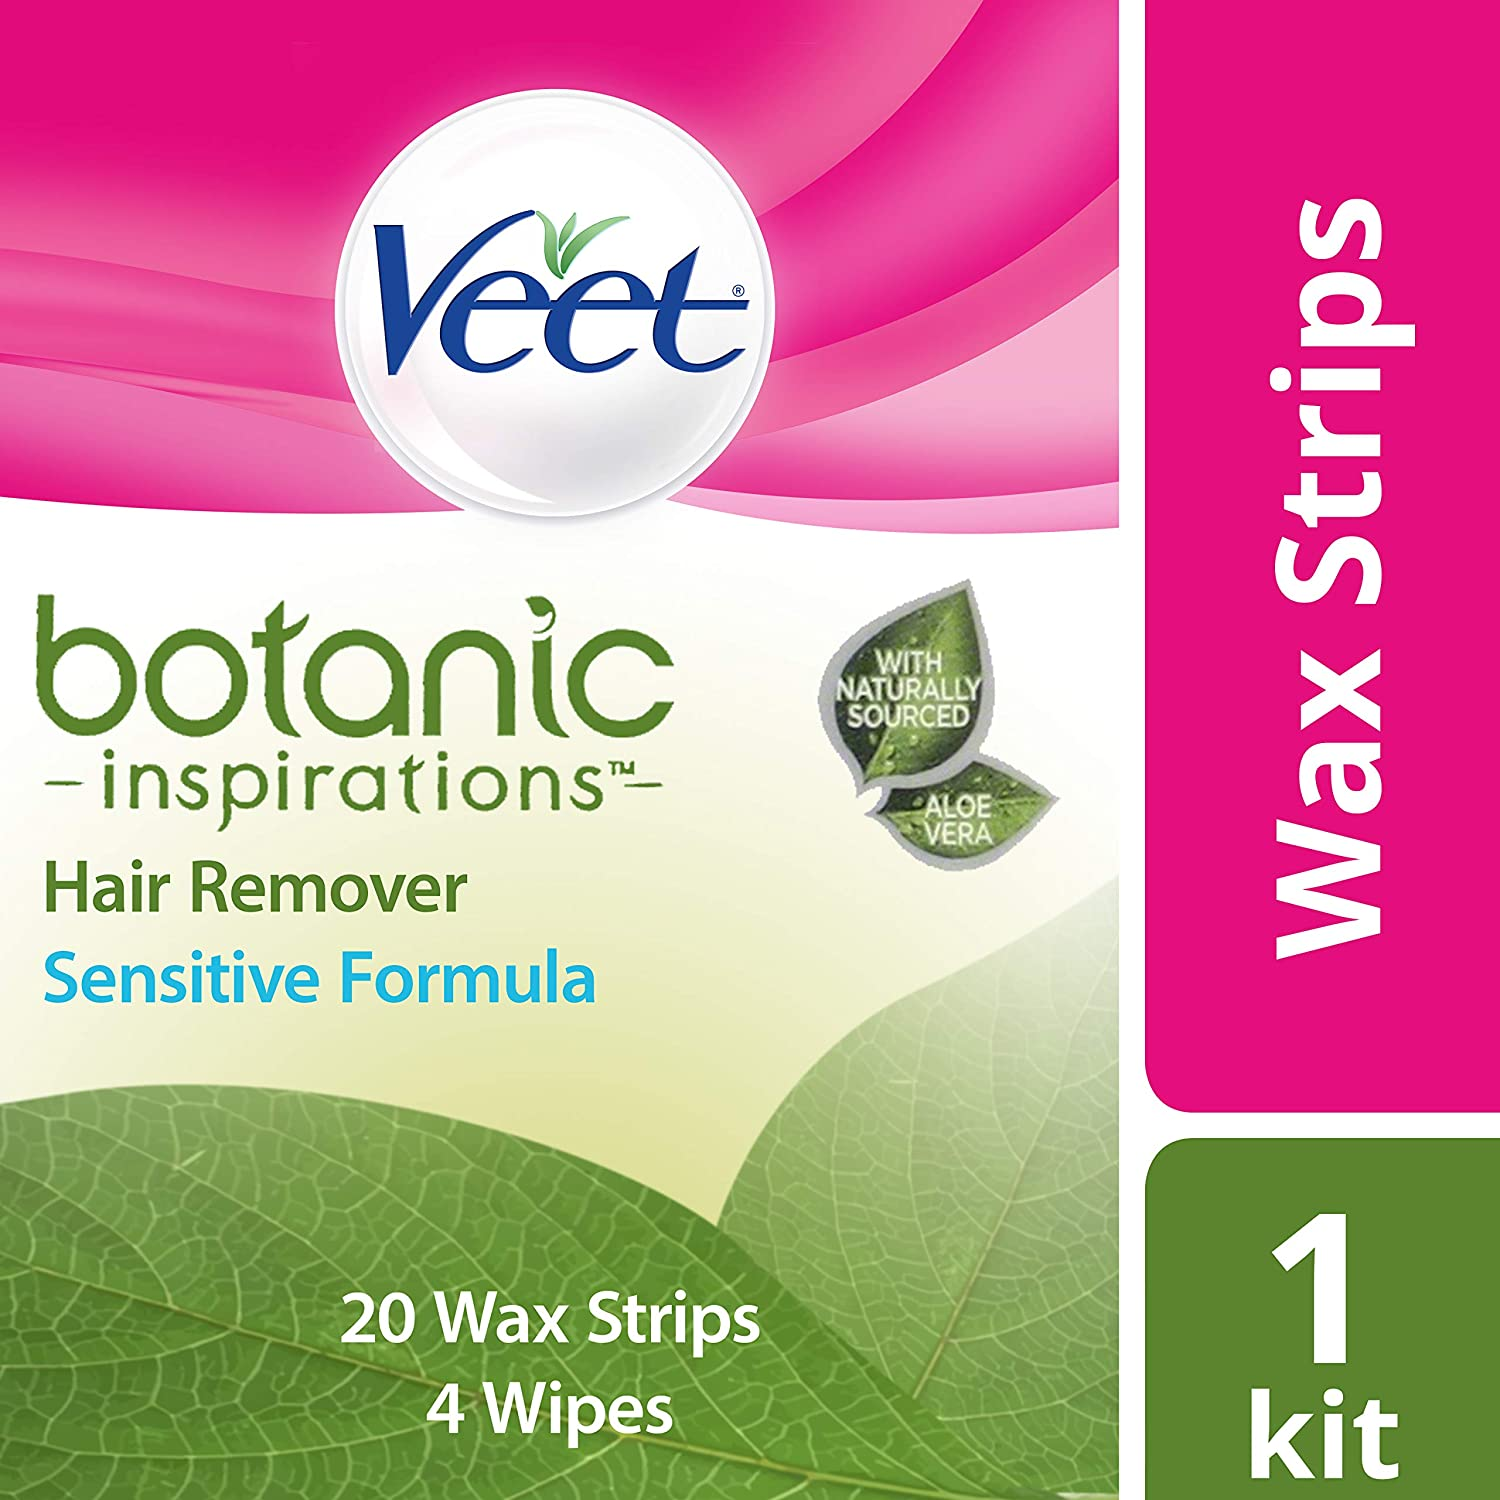 VEET Botanic Inspirations Wax Strip Kit for Bikini, Under Arm & Face, Sensitive Formula, 20 Wax Strips